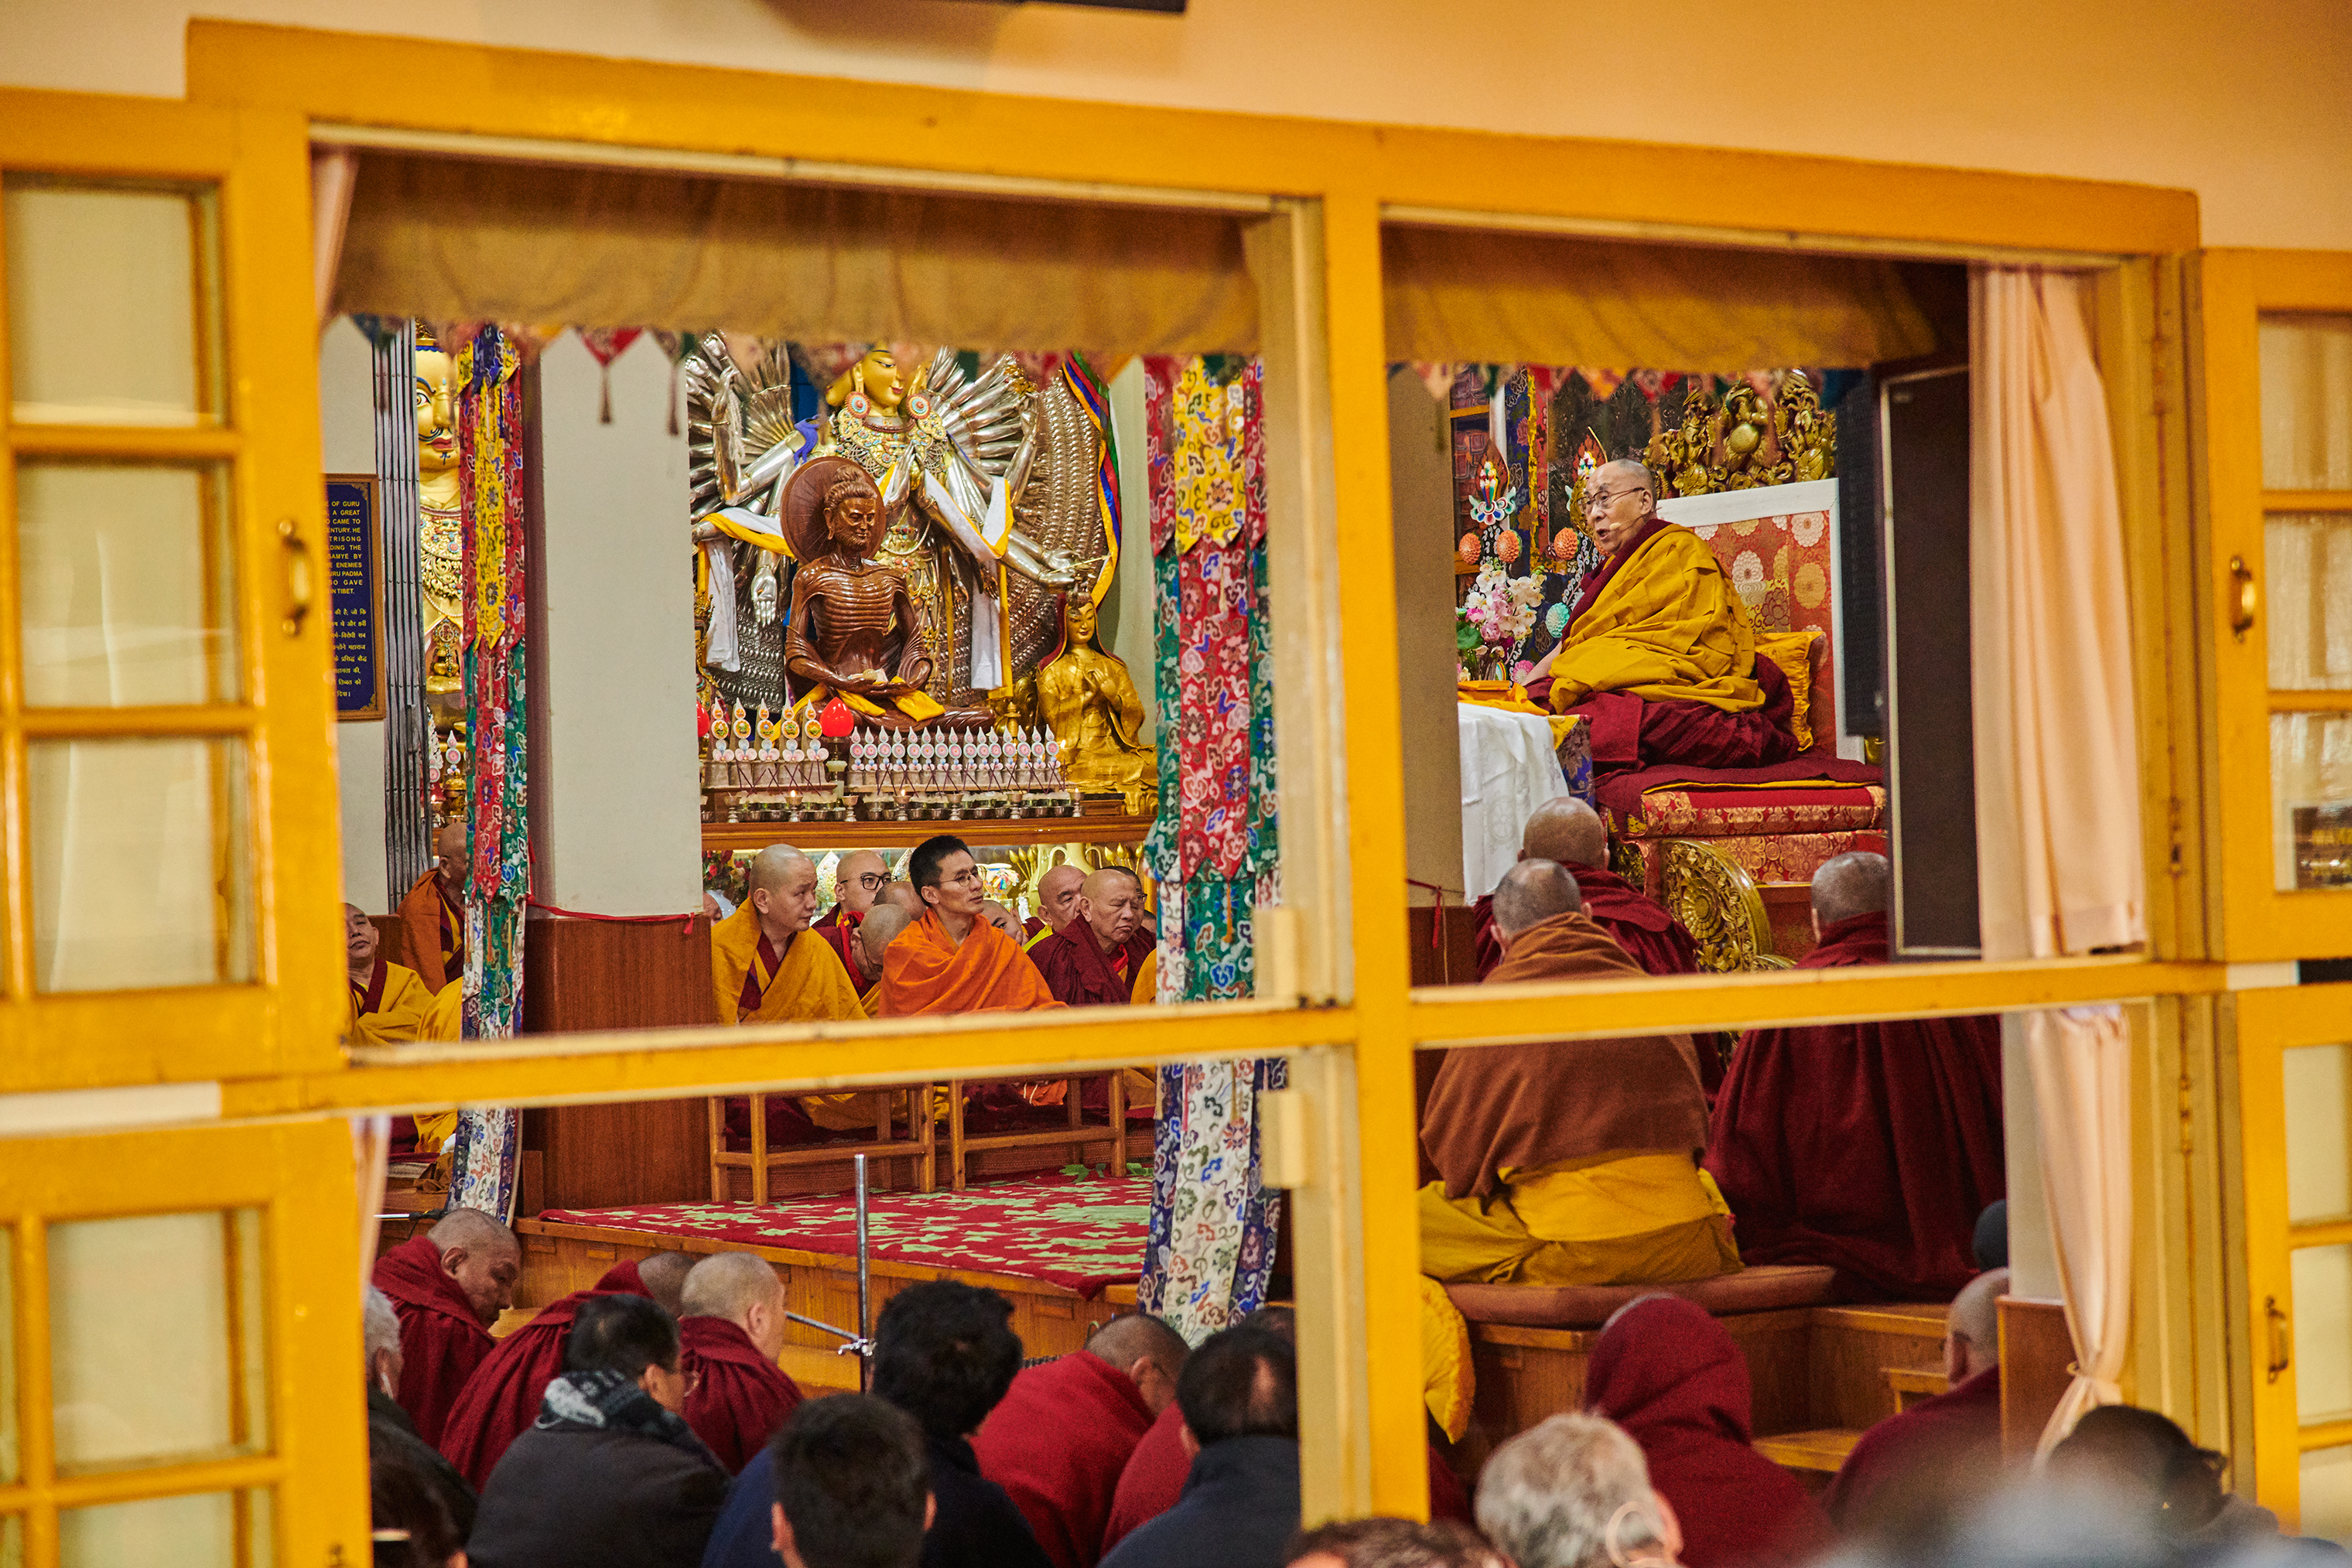 The Dalai Lama delivers a lecture from his throne on Feb. 18 to mark Losar, the Tibetan new year.